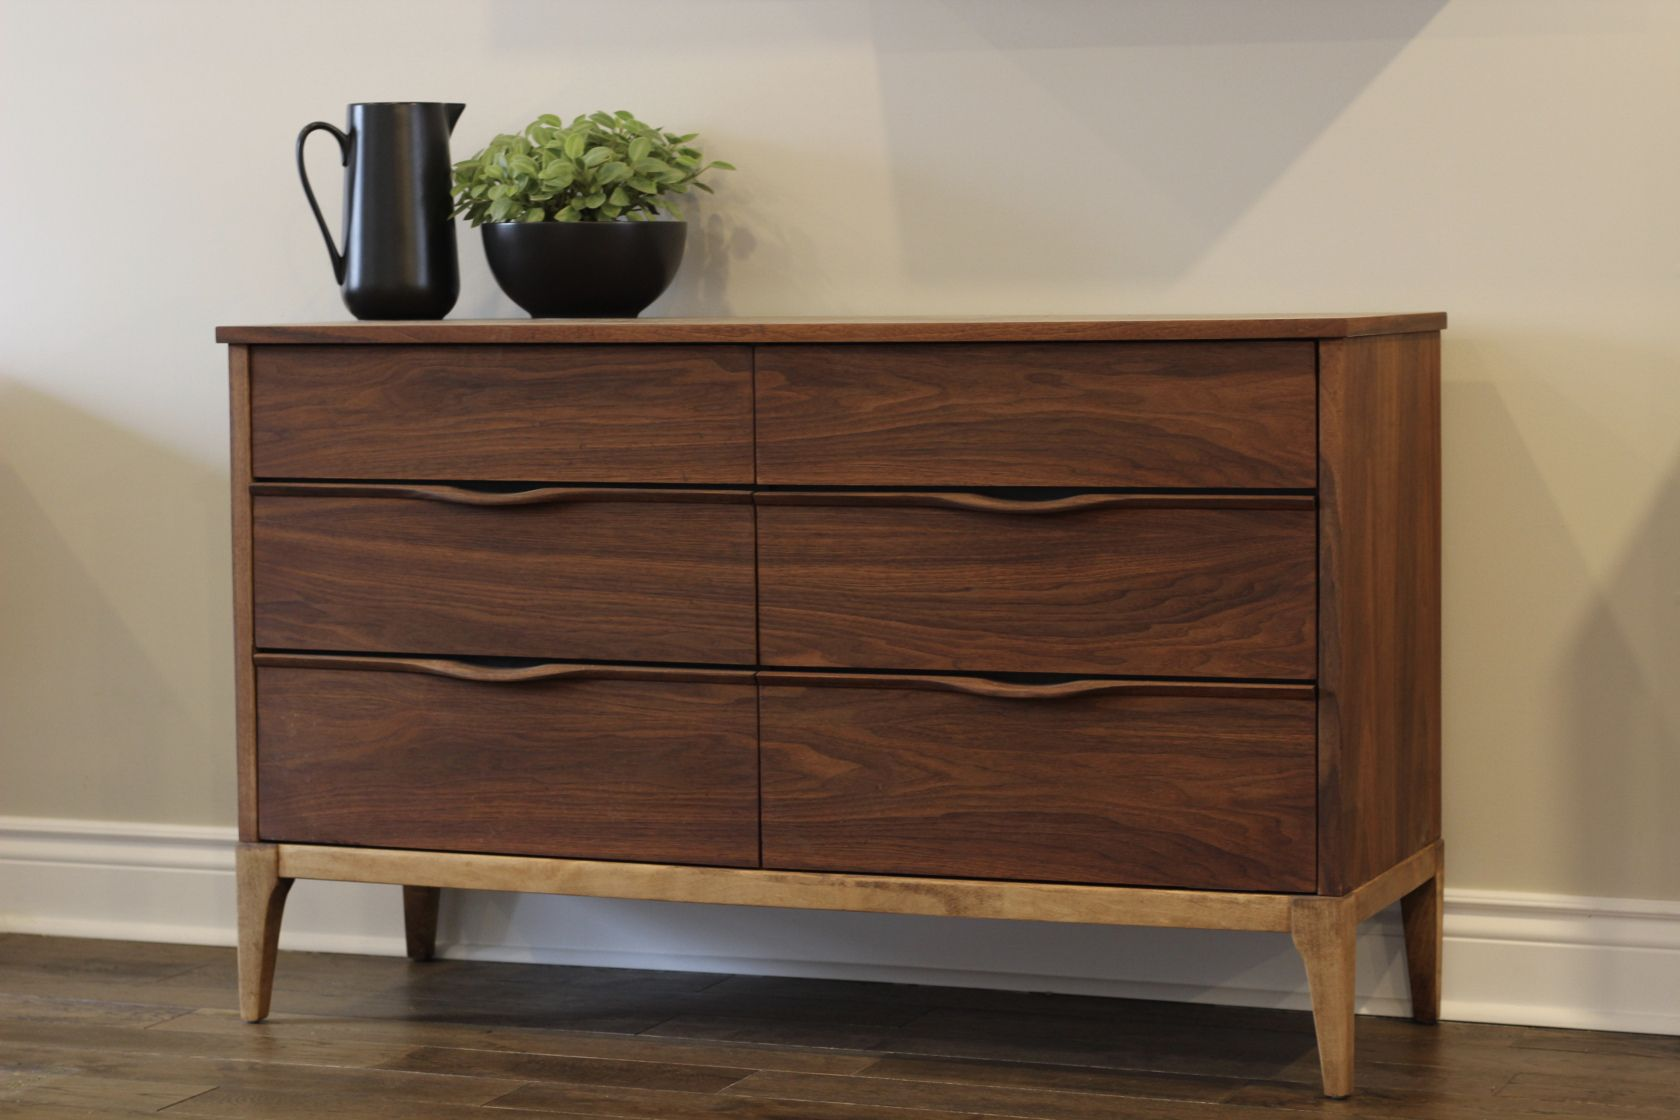 Vintage kaufman furniture dresser in walnut with contrasting birch base